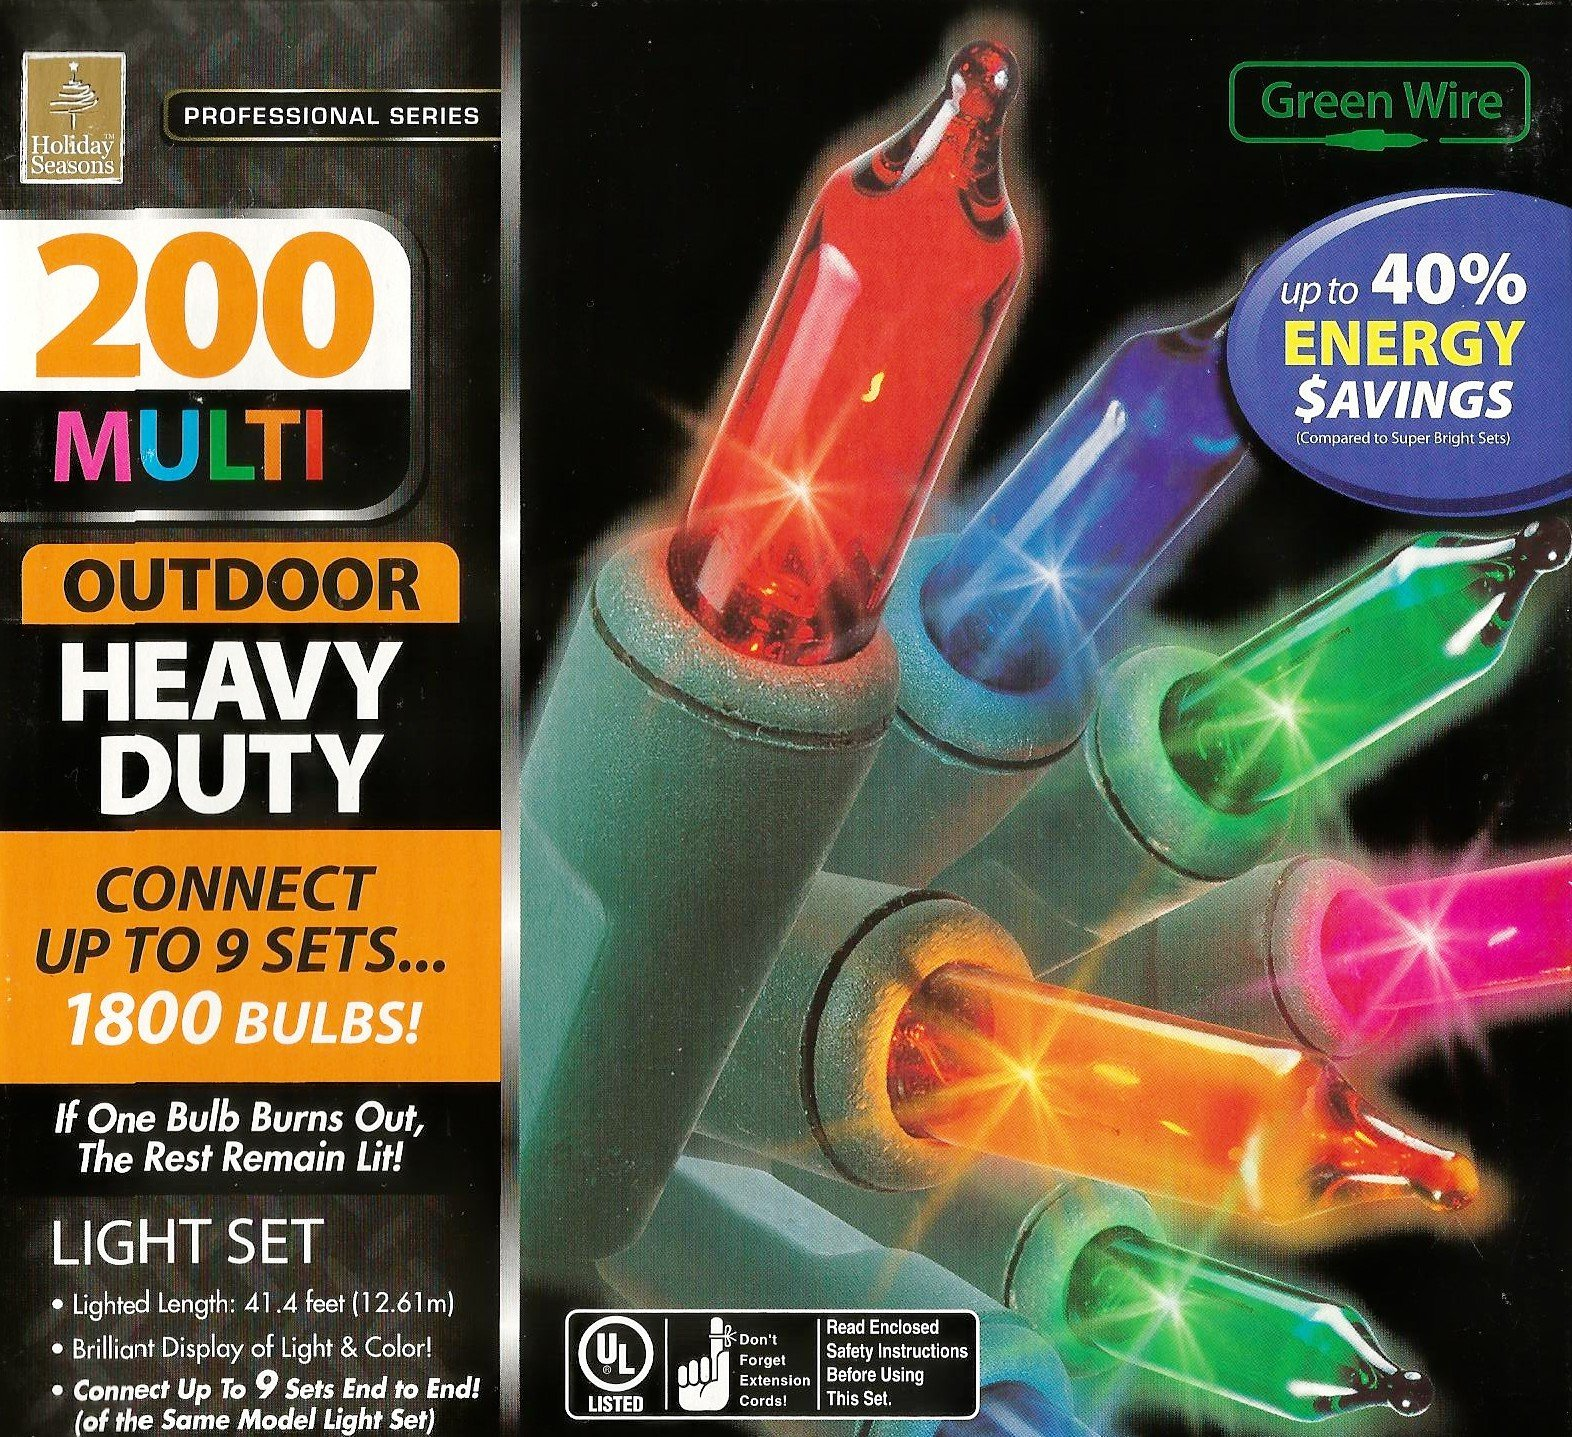 Professional Series 200 Multi Color Indoor/Outdoor Heavy Duty Light Set